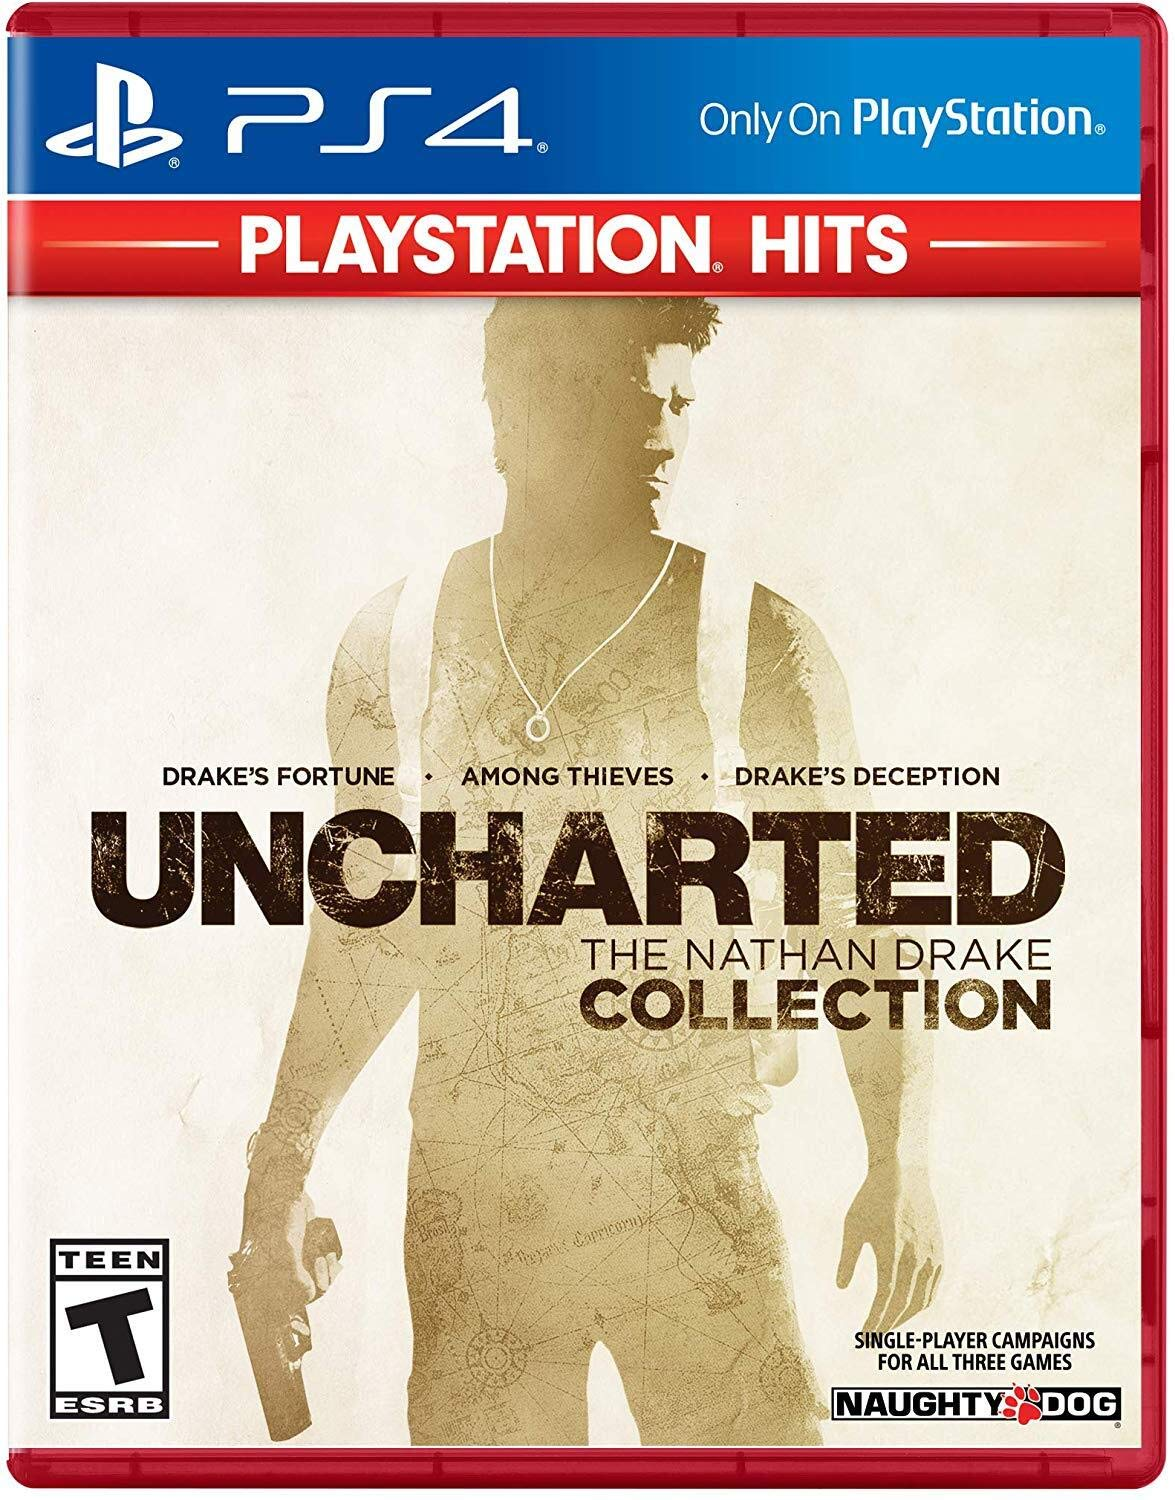 Uncharted: Nathan Drake Collection 4 Limited time trial Omaha Mall price - Hits PlayStation